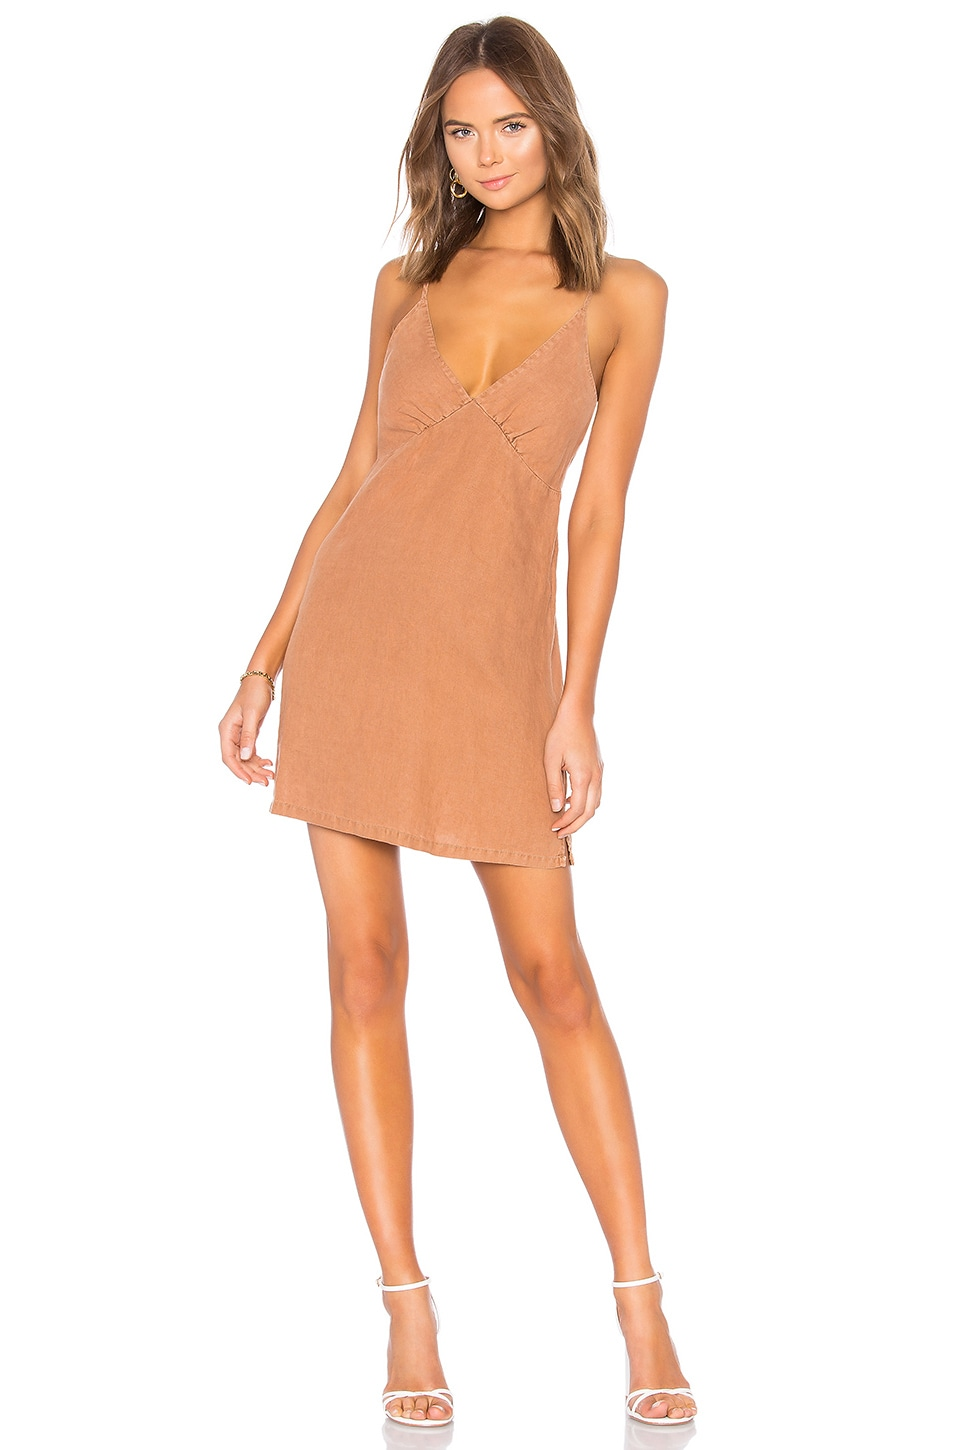 YFB CLOTHING Lexington Dress in Honey Nut